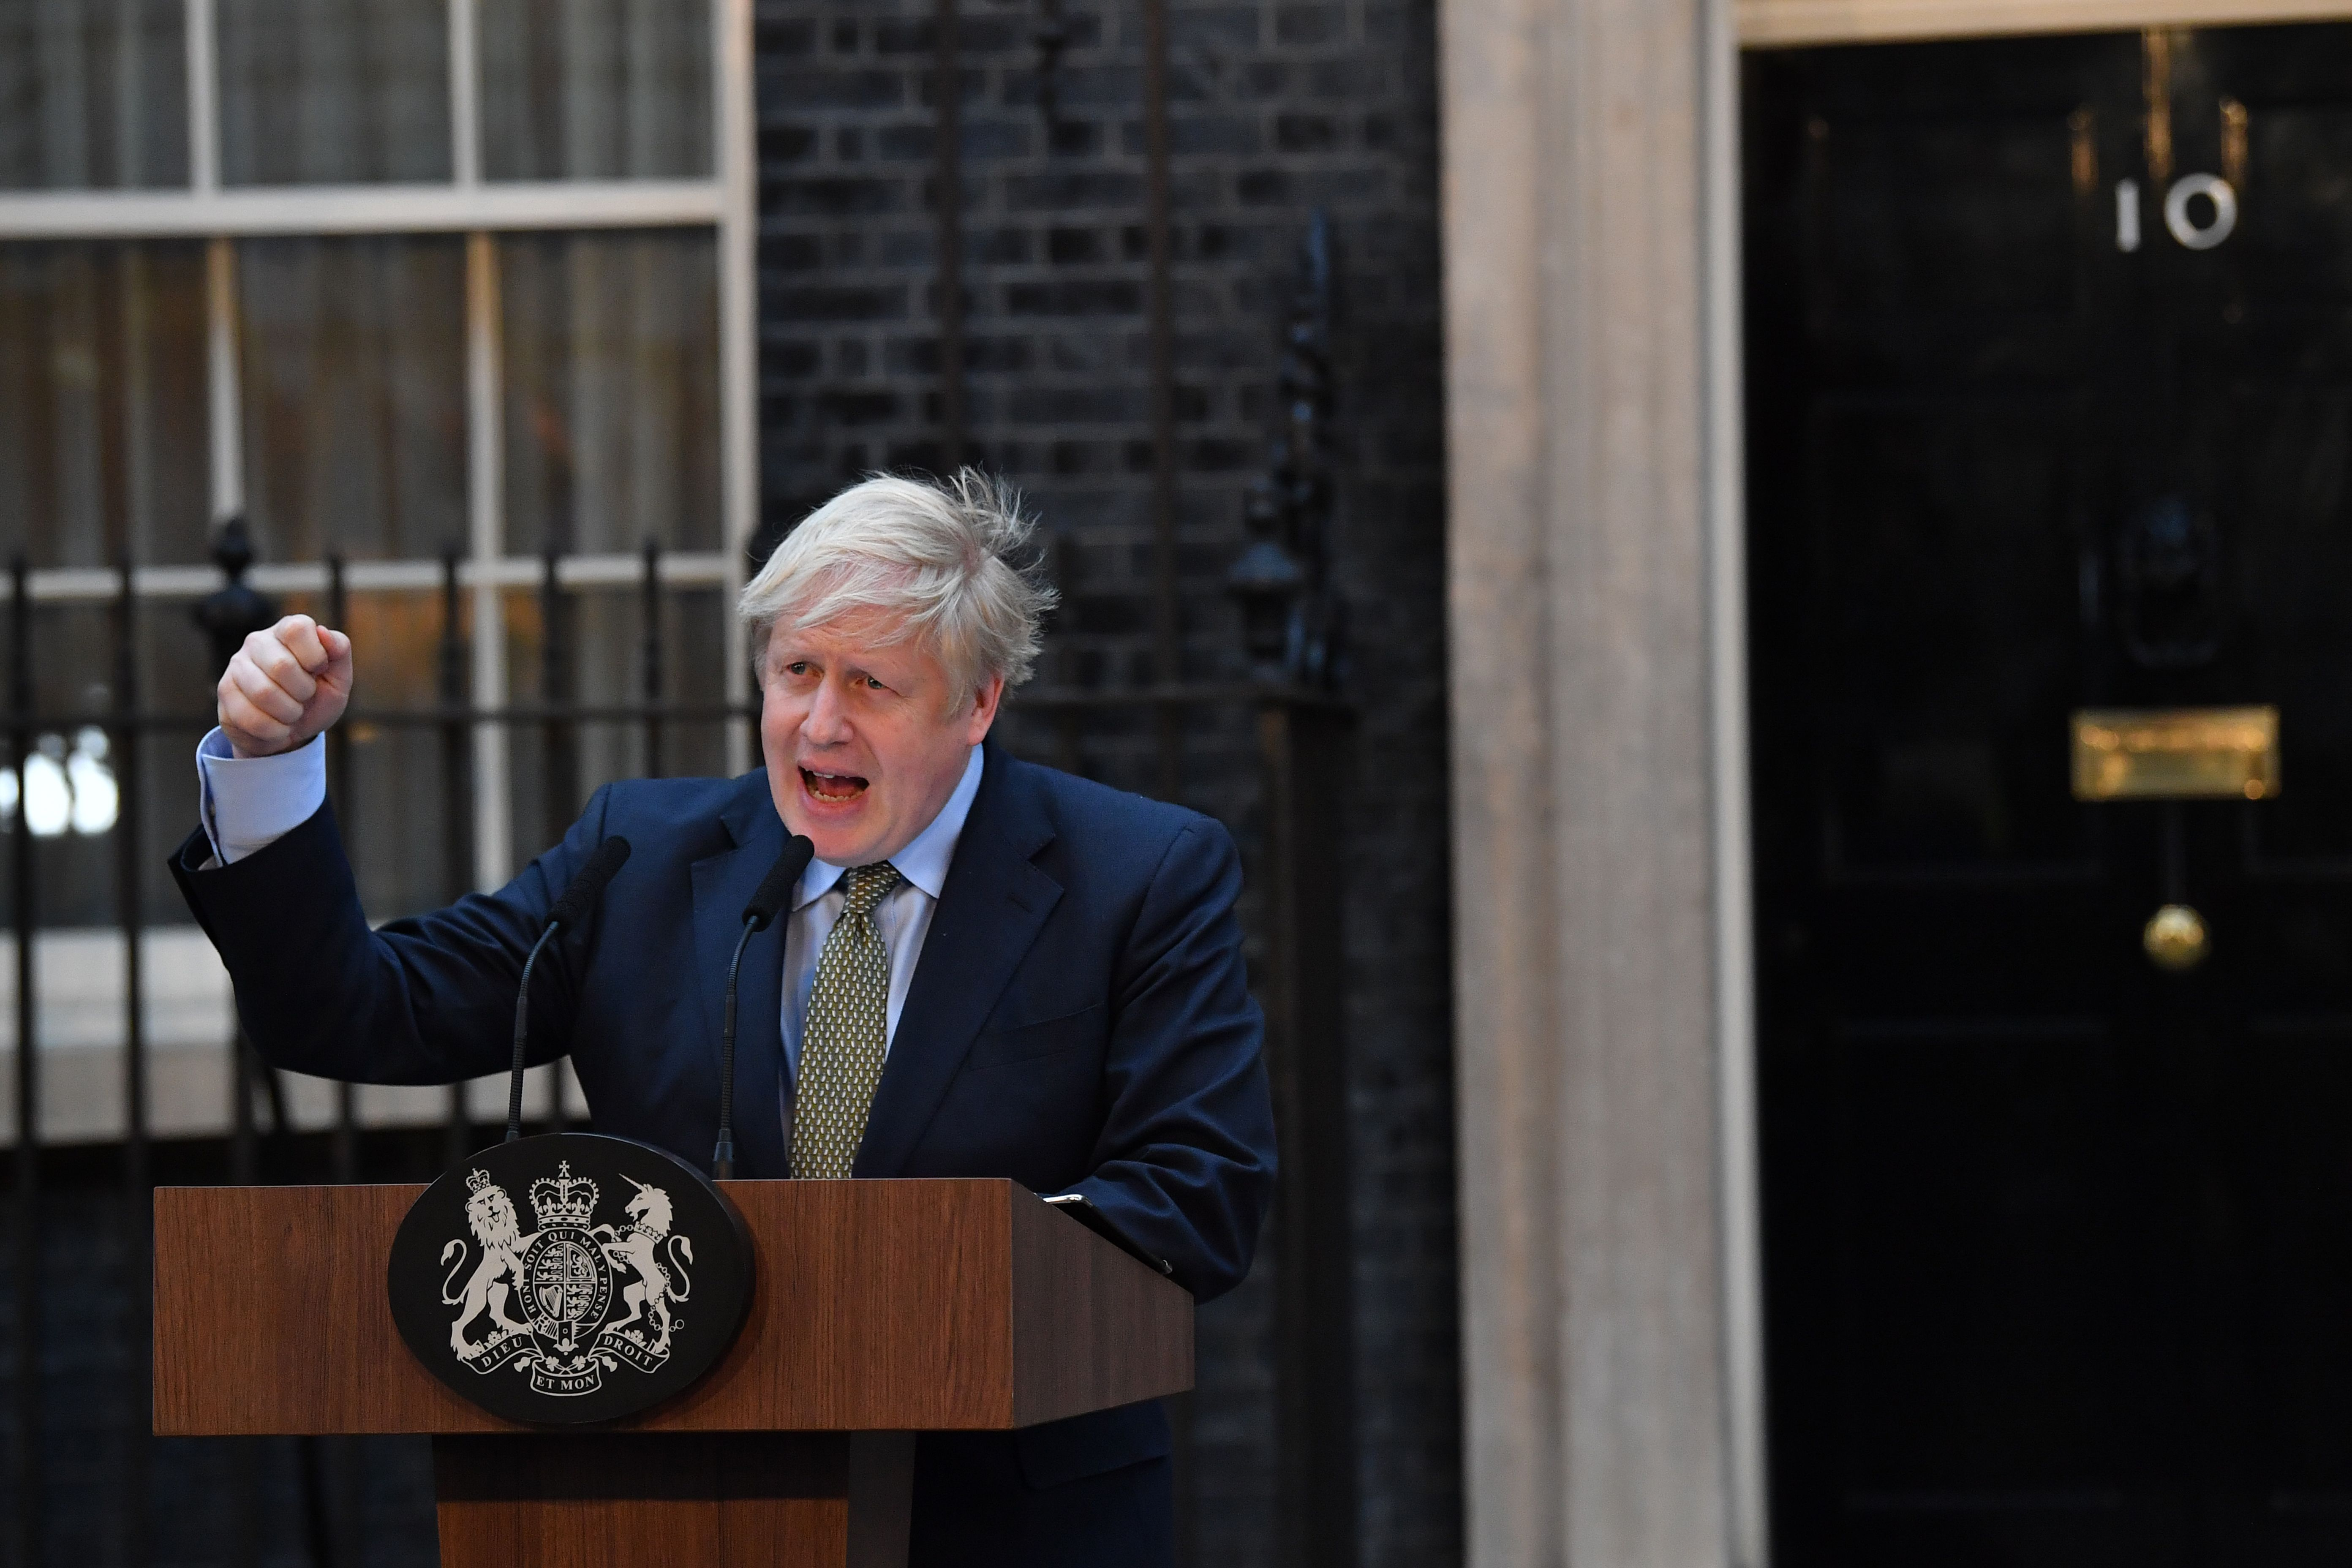 Boris Johnson speaking outside Downing Street